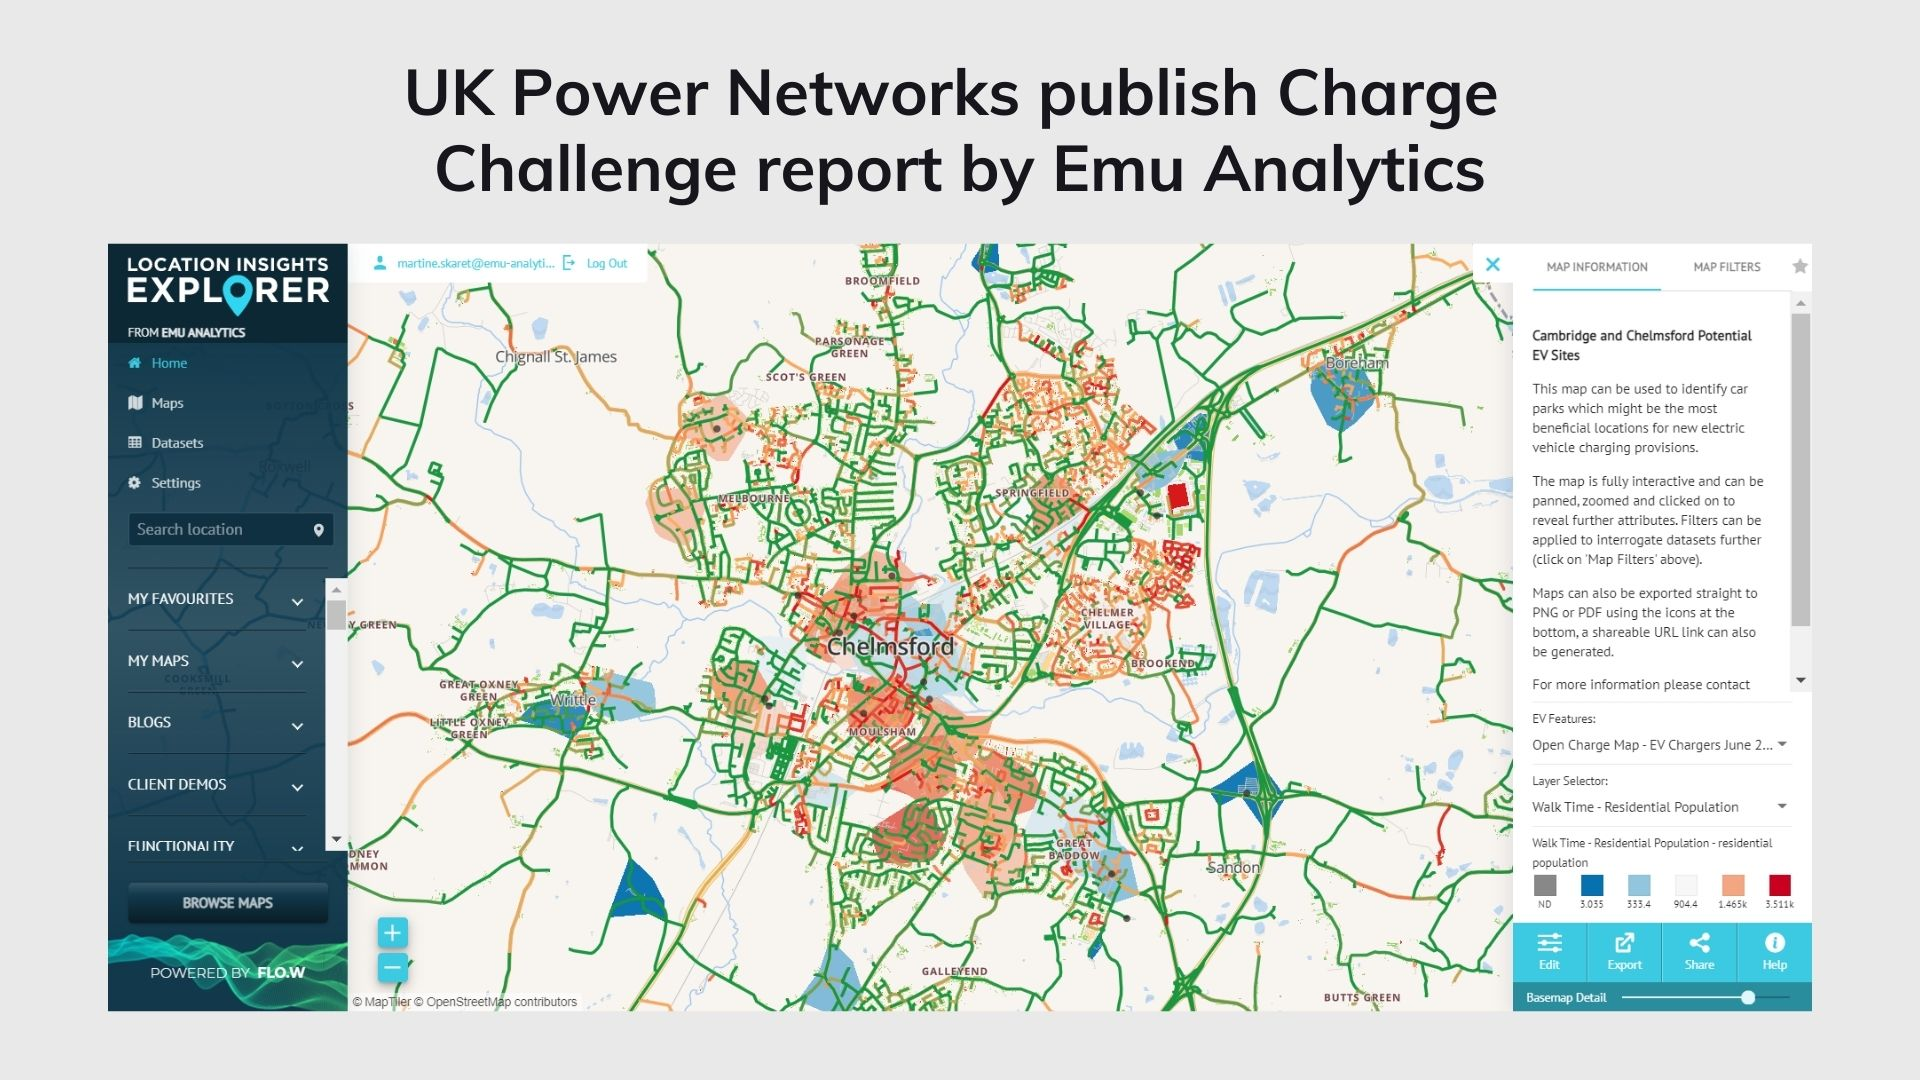 UK Power Networks publish Charge  Challenge report by Emu Analytics